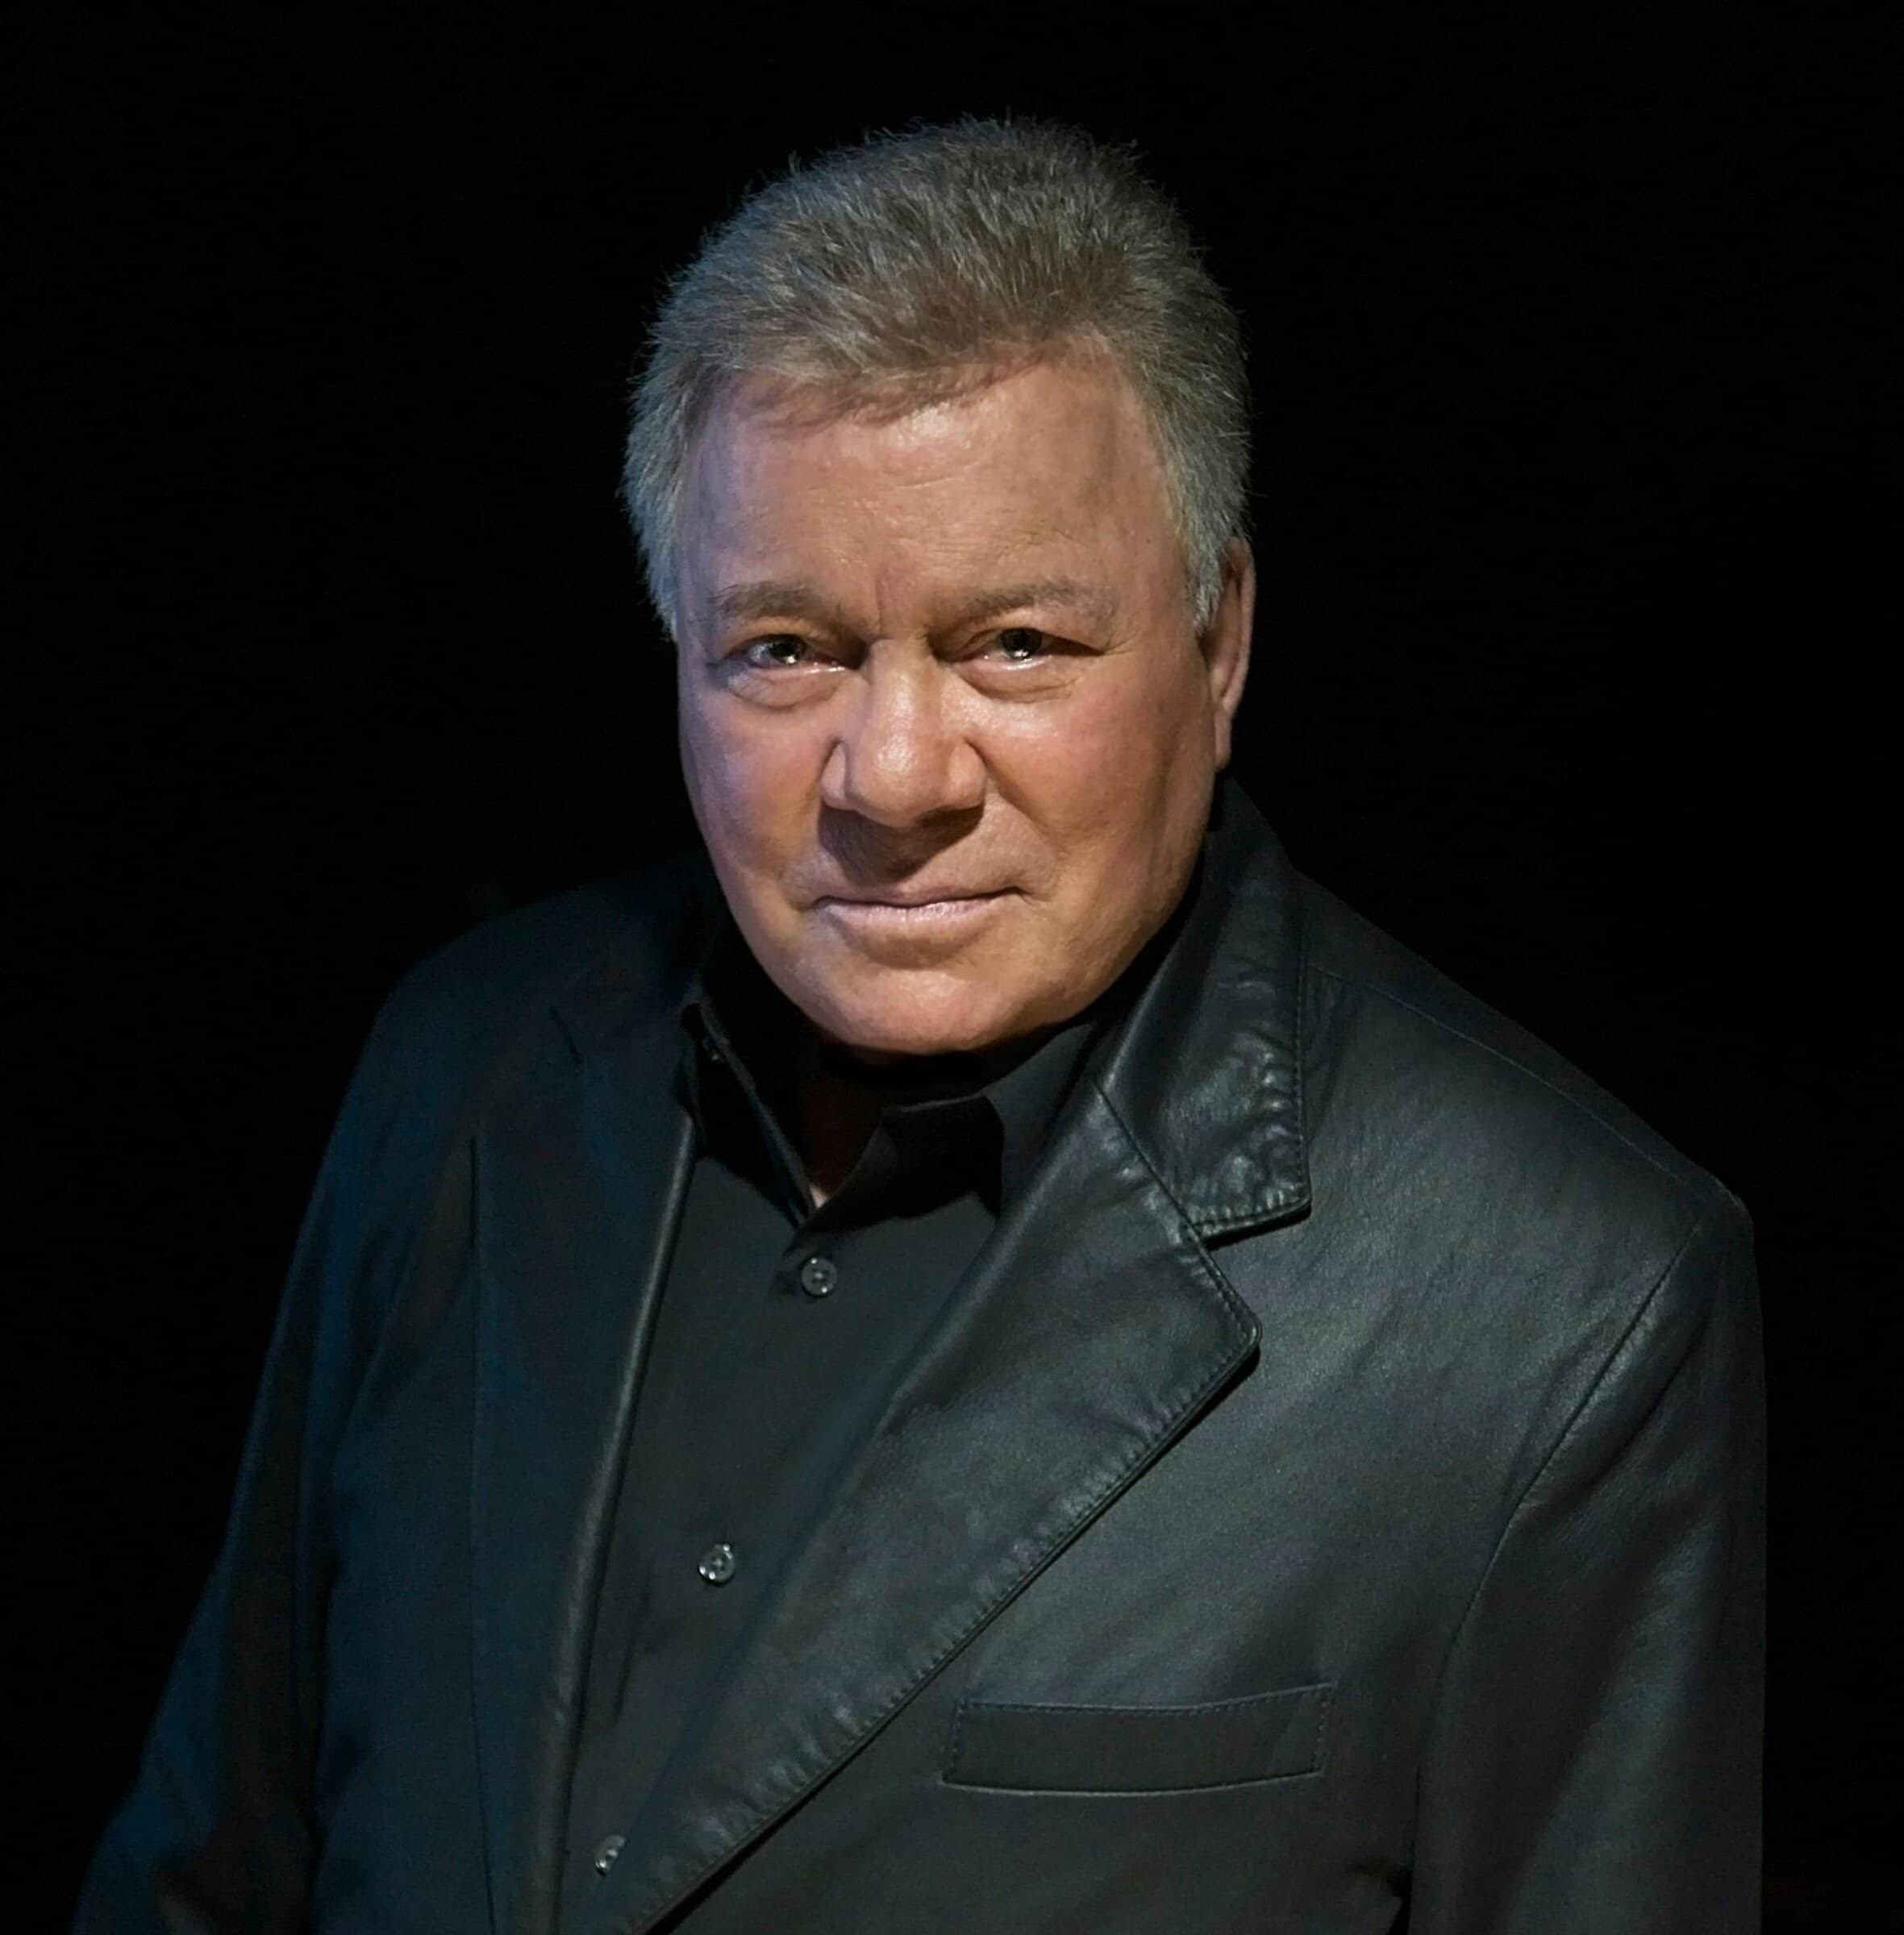 What's William Shatner's age when he finally flies into space? – Film Daily